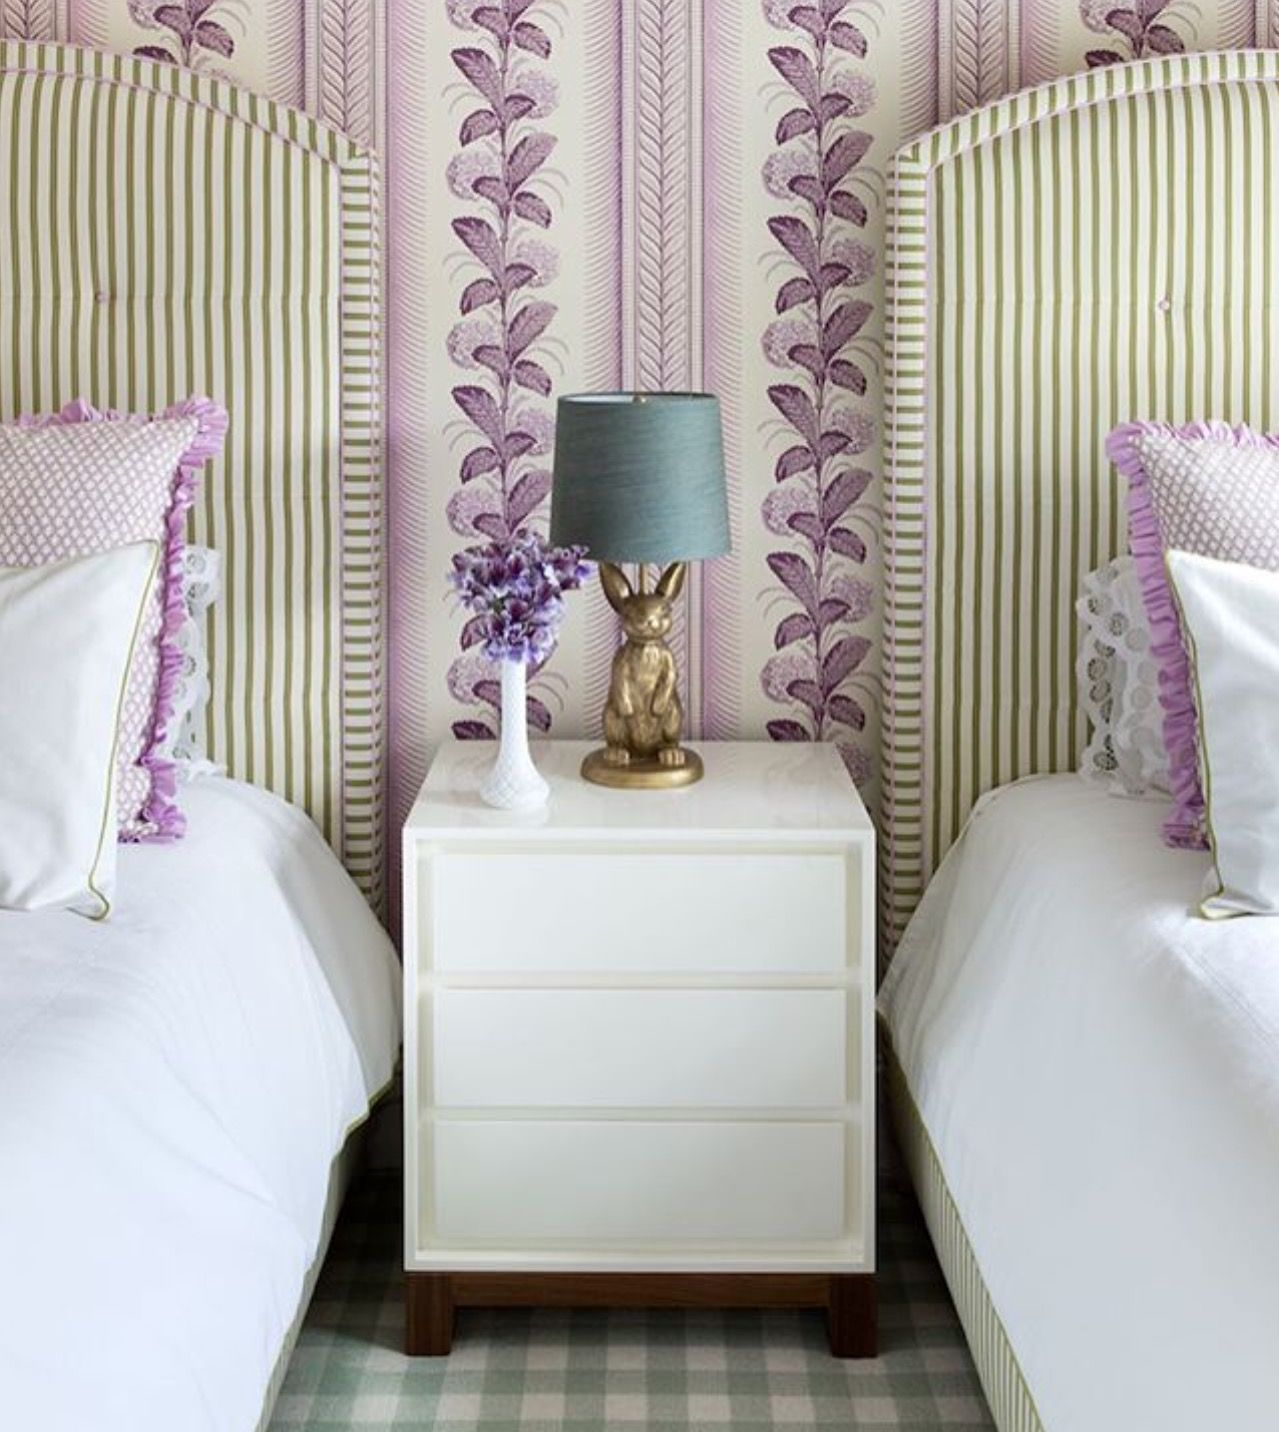 Tilten Fenwick - Love The Lavender And Green.